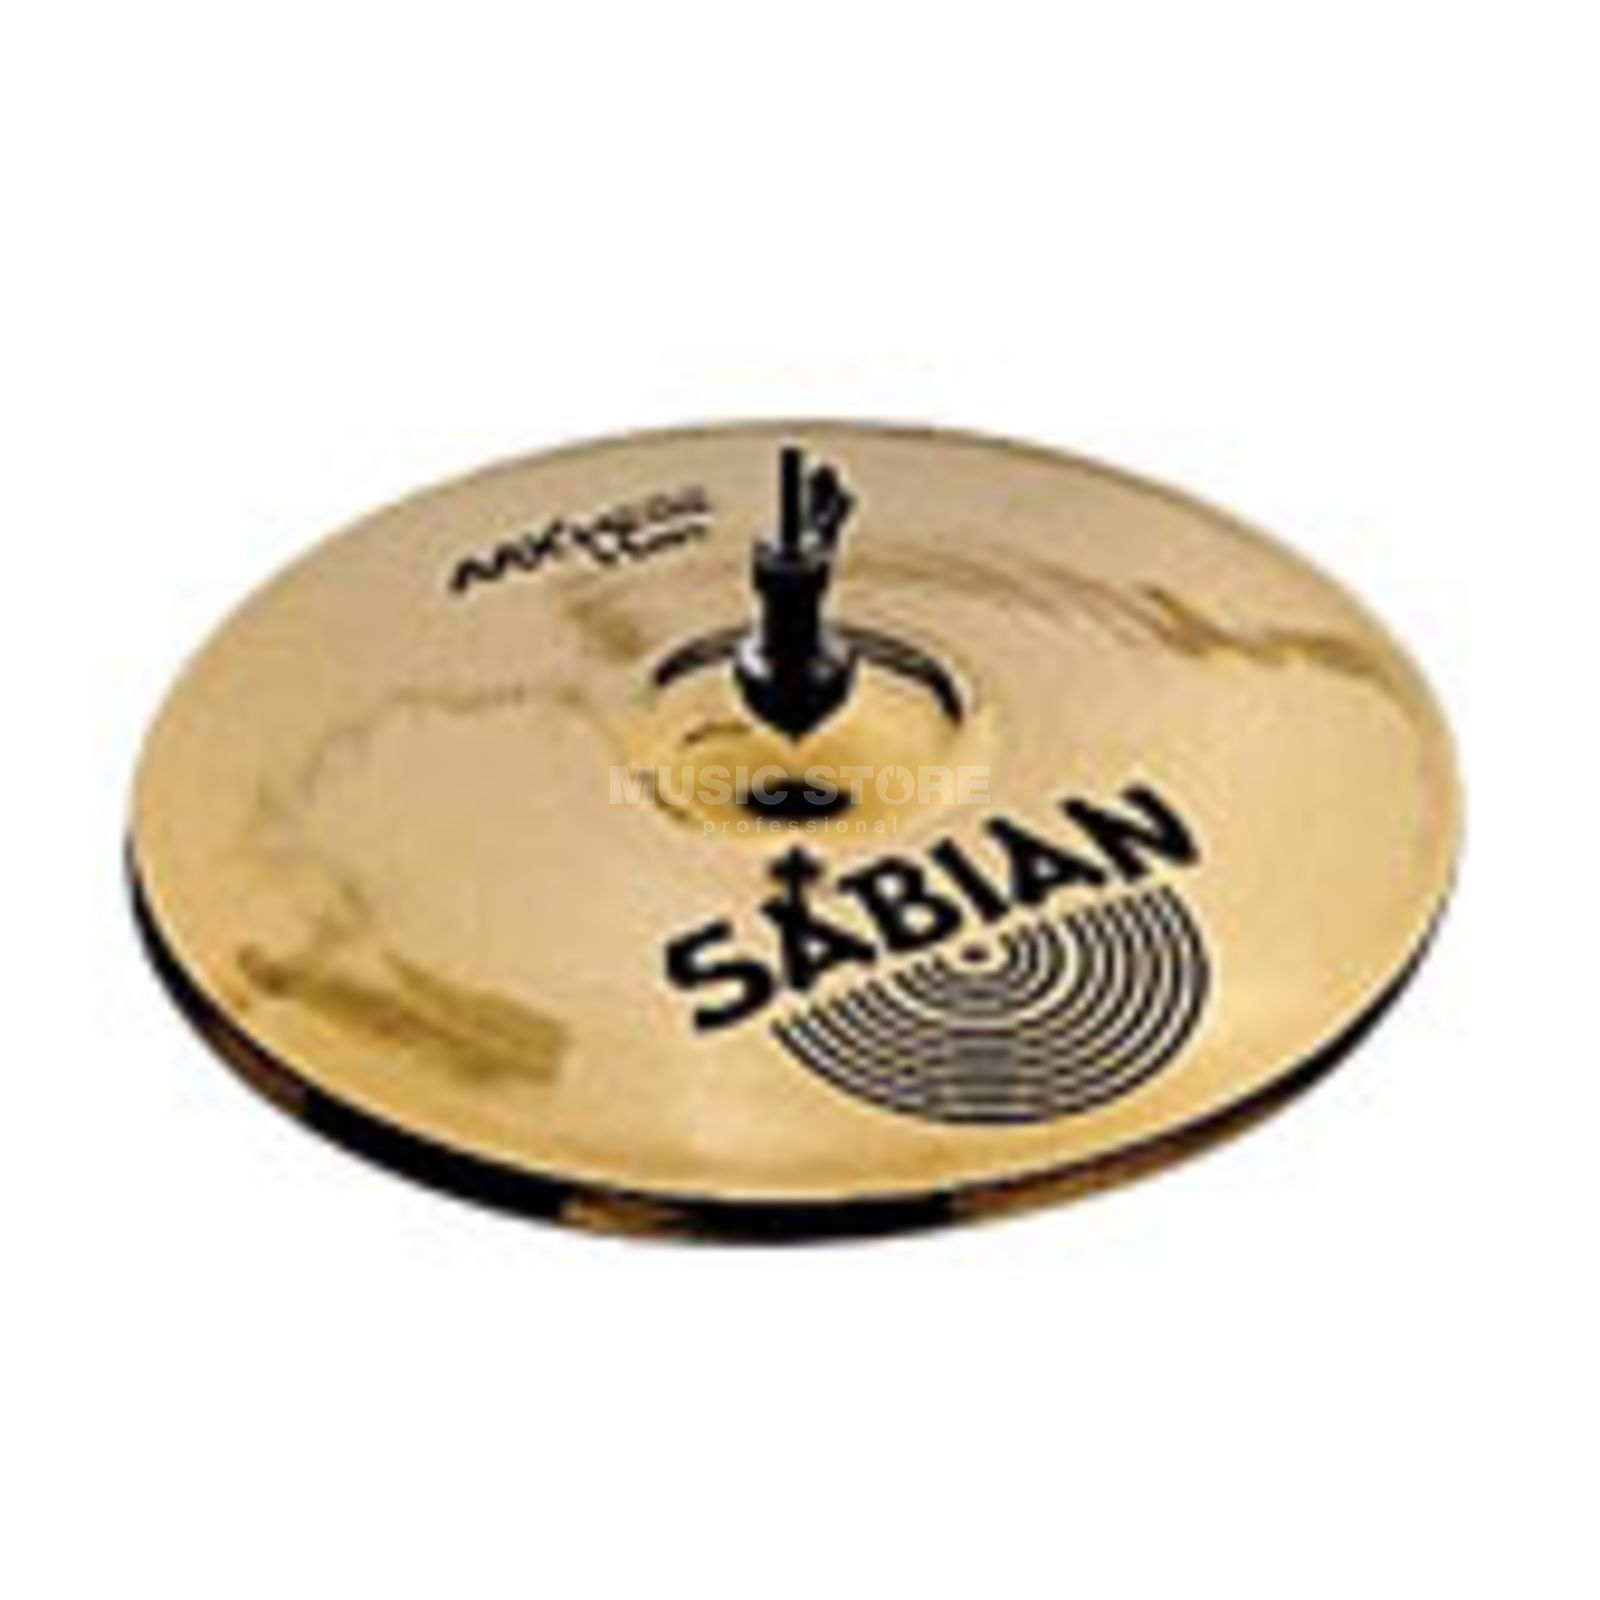 "Sabian AAX Metal HiHat 14"", Brilliant Finish Produktbild"